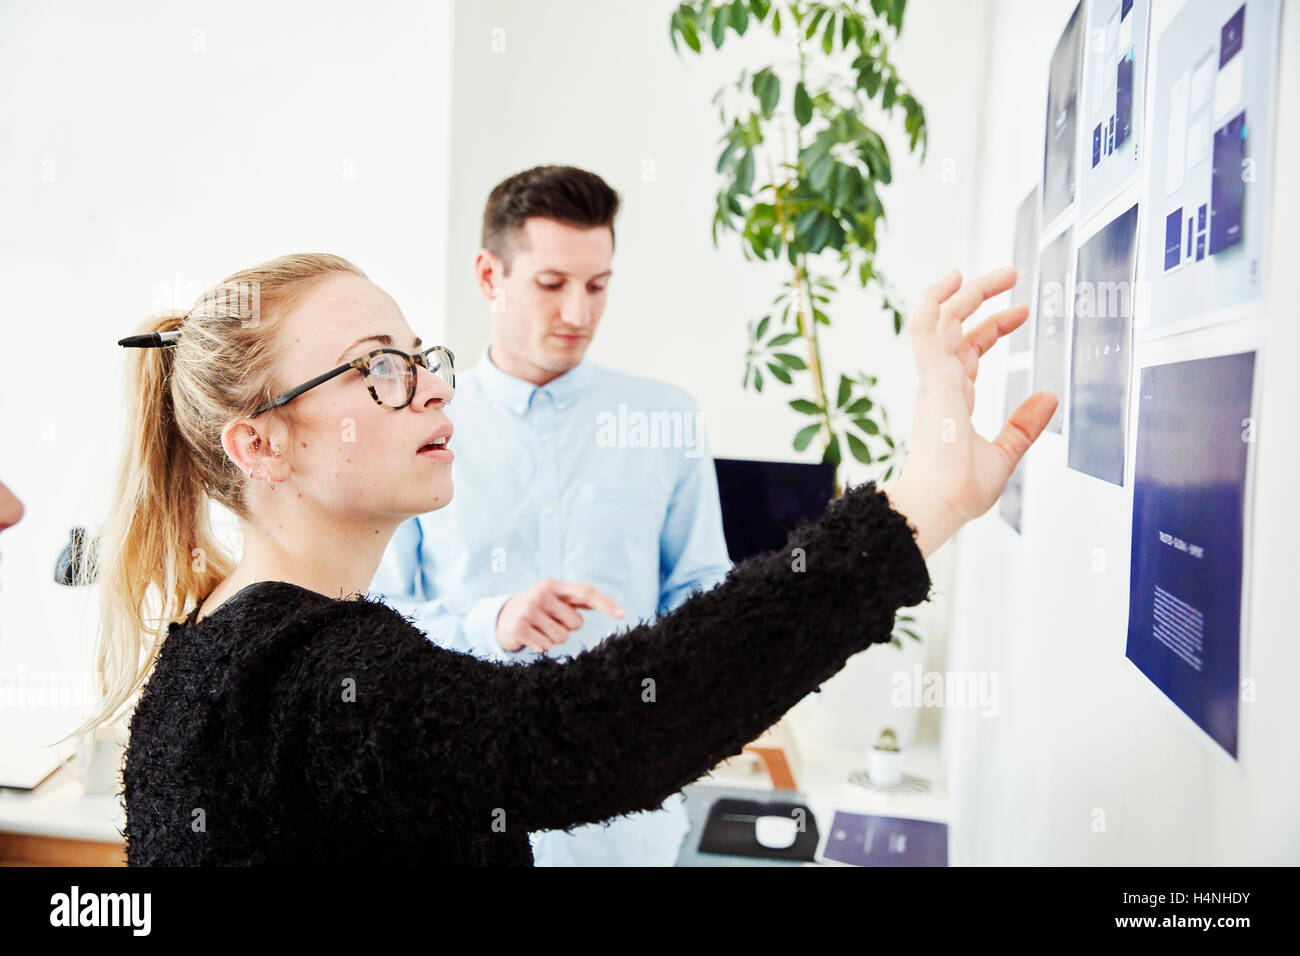 Two people looking at printed plans stuck on a wall, project management and discussions. - Stock Image